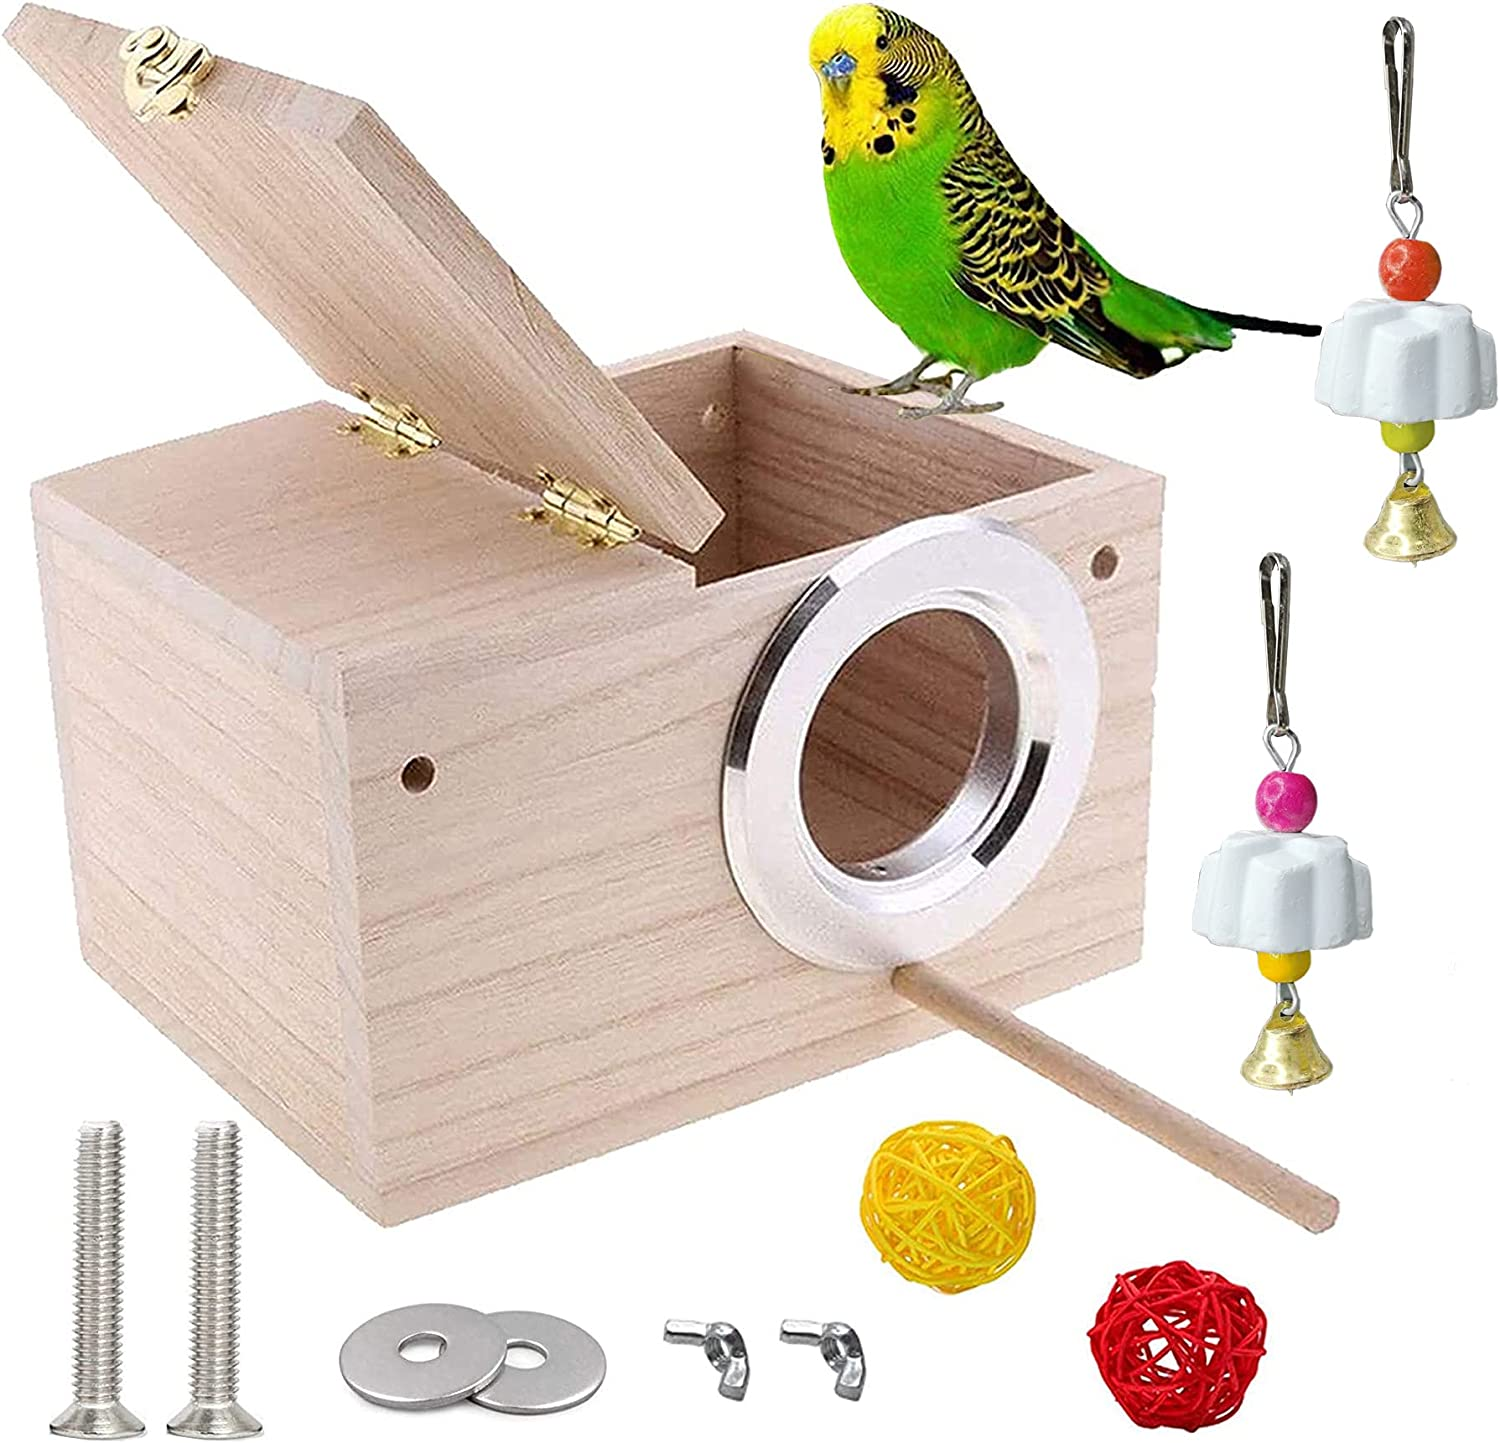 JSLZF Bird Nesting Box Wood Latest item Budgie Mat Parrot Perch with Safety and trust House